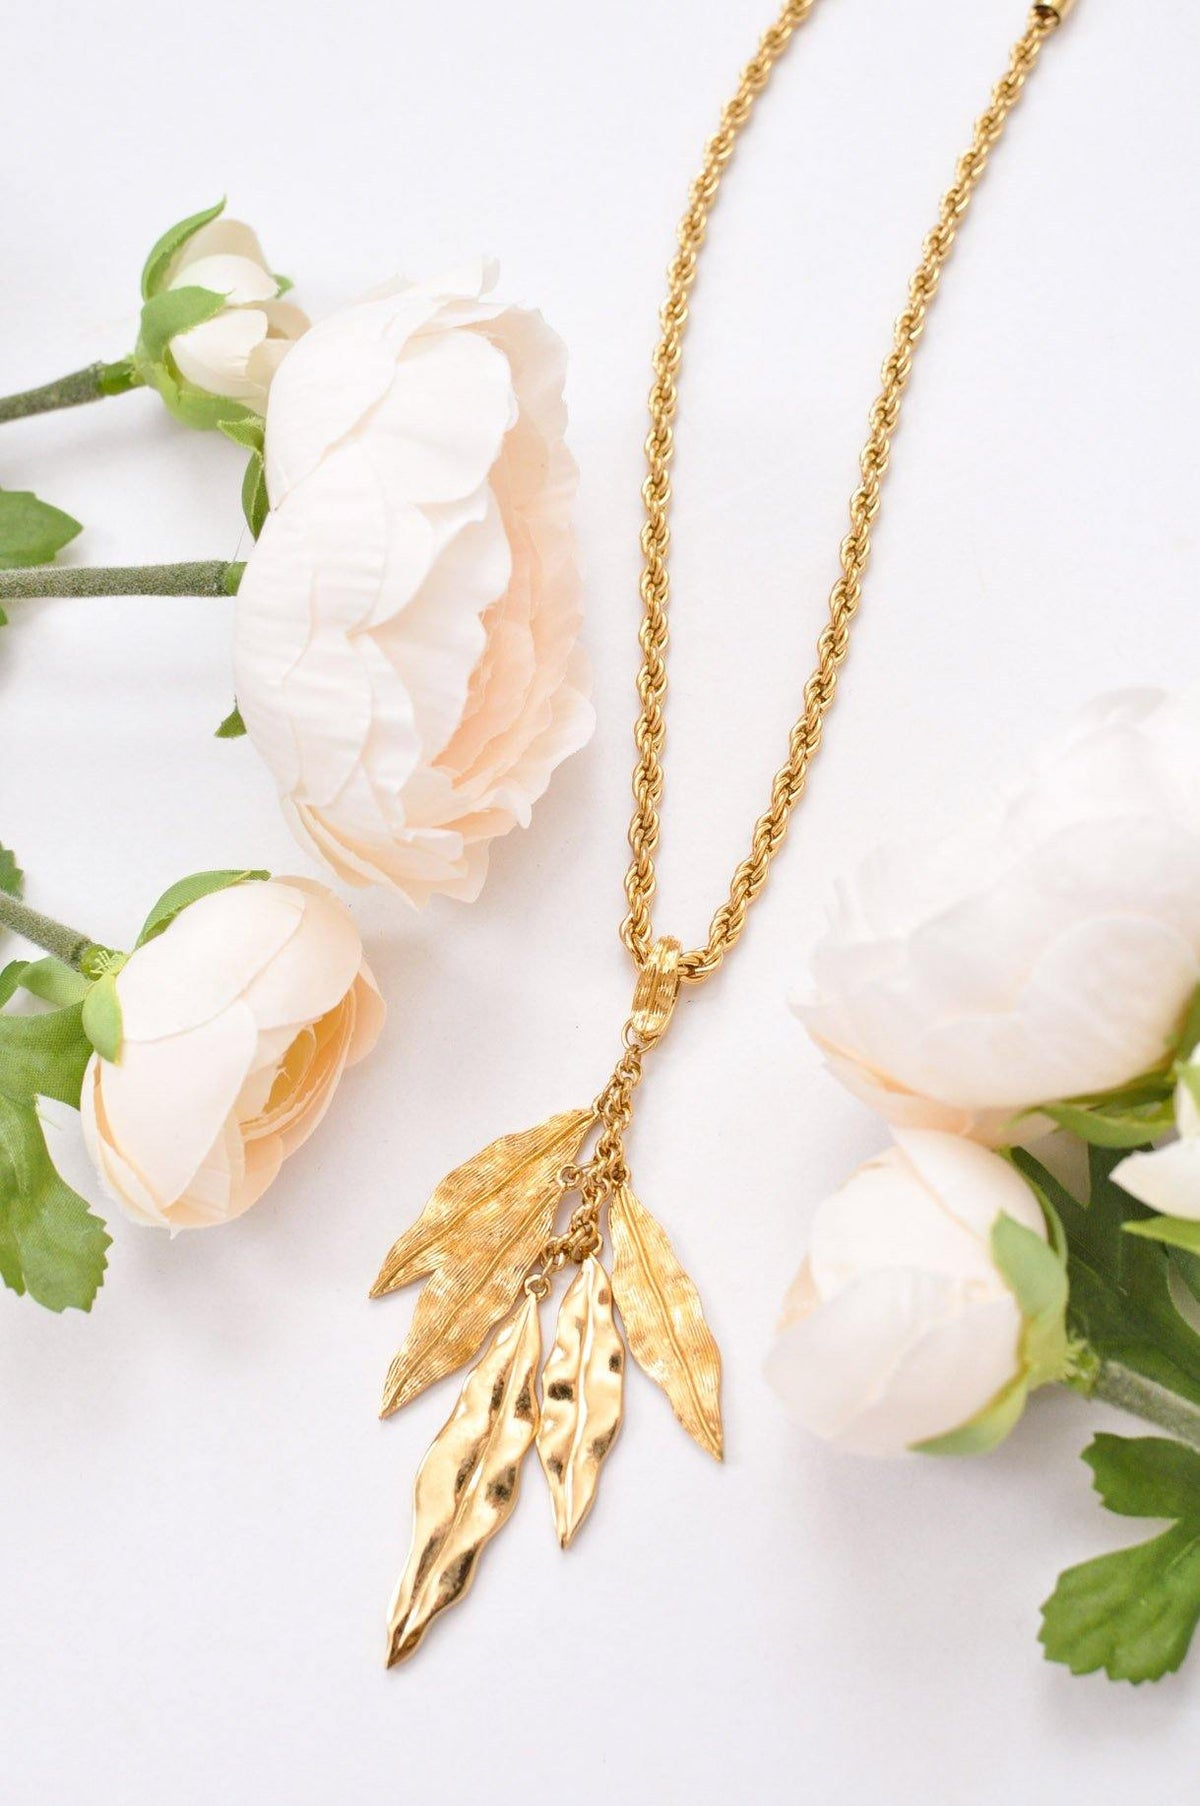 Vintage Multi Feather Pendant Necklace from Sweet and Spark.